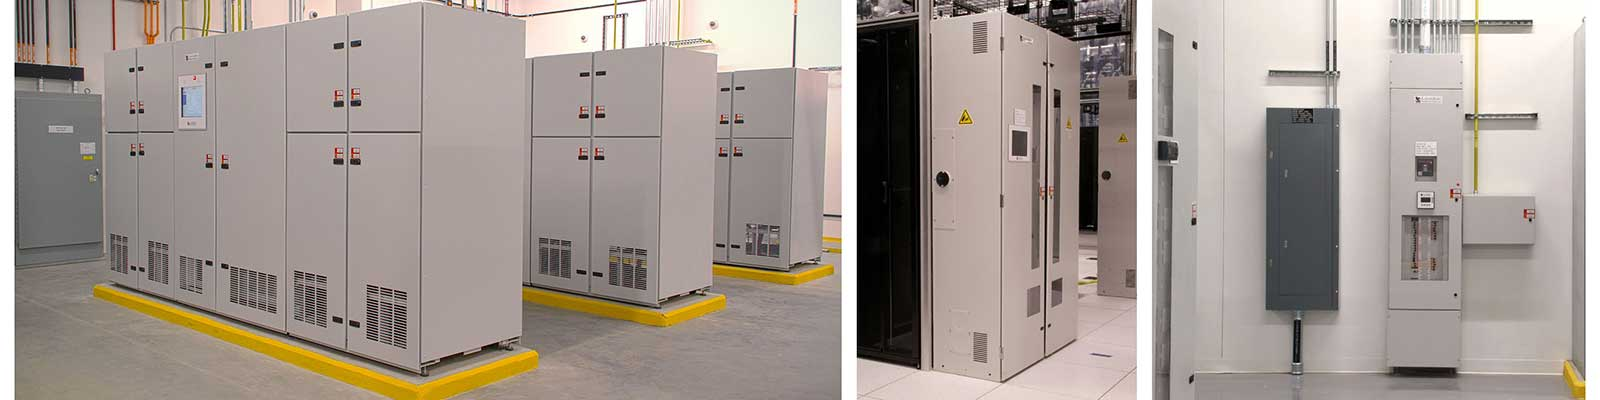 LayerZero Power Distribution Products